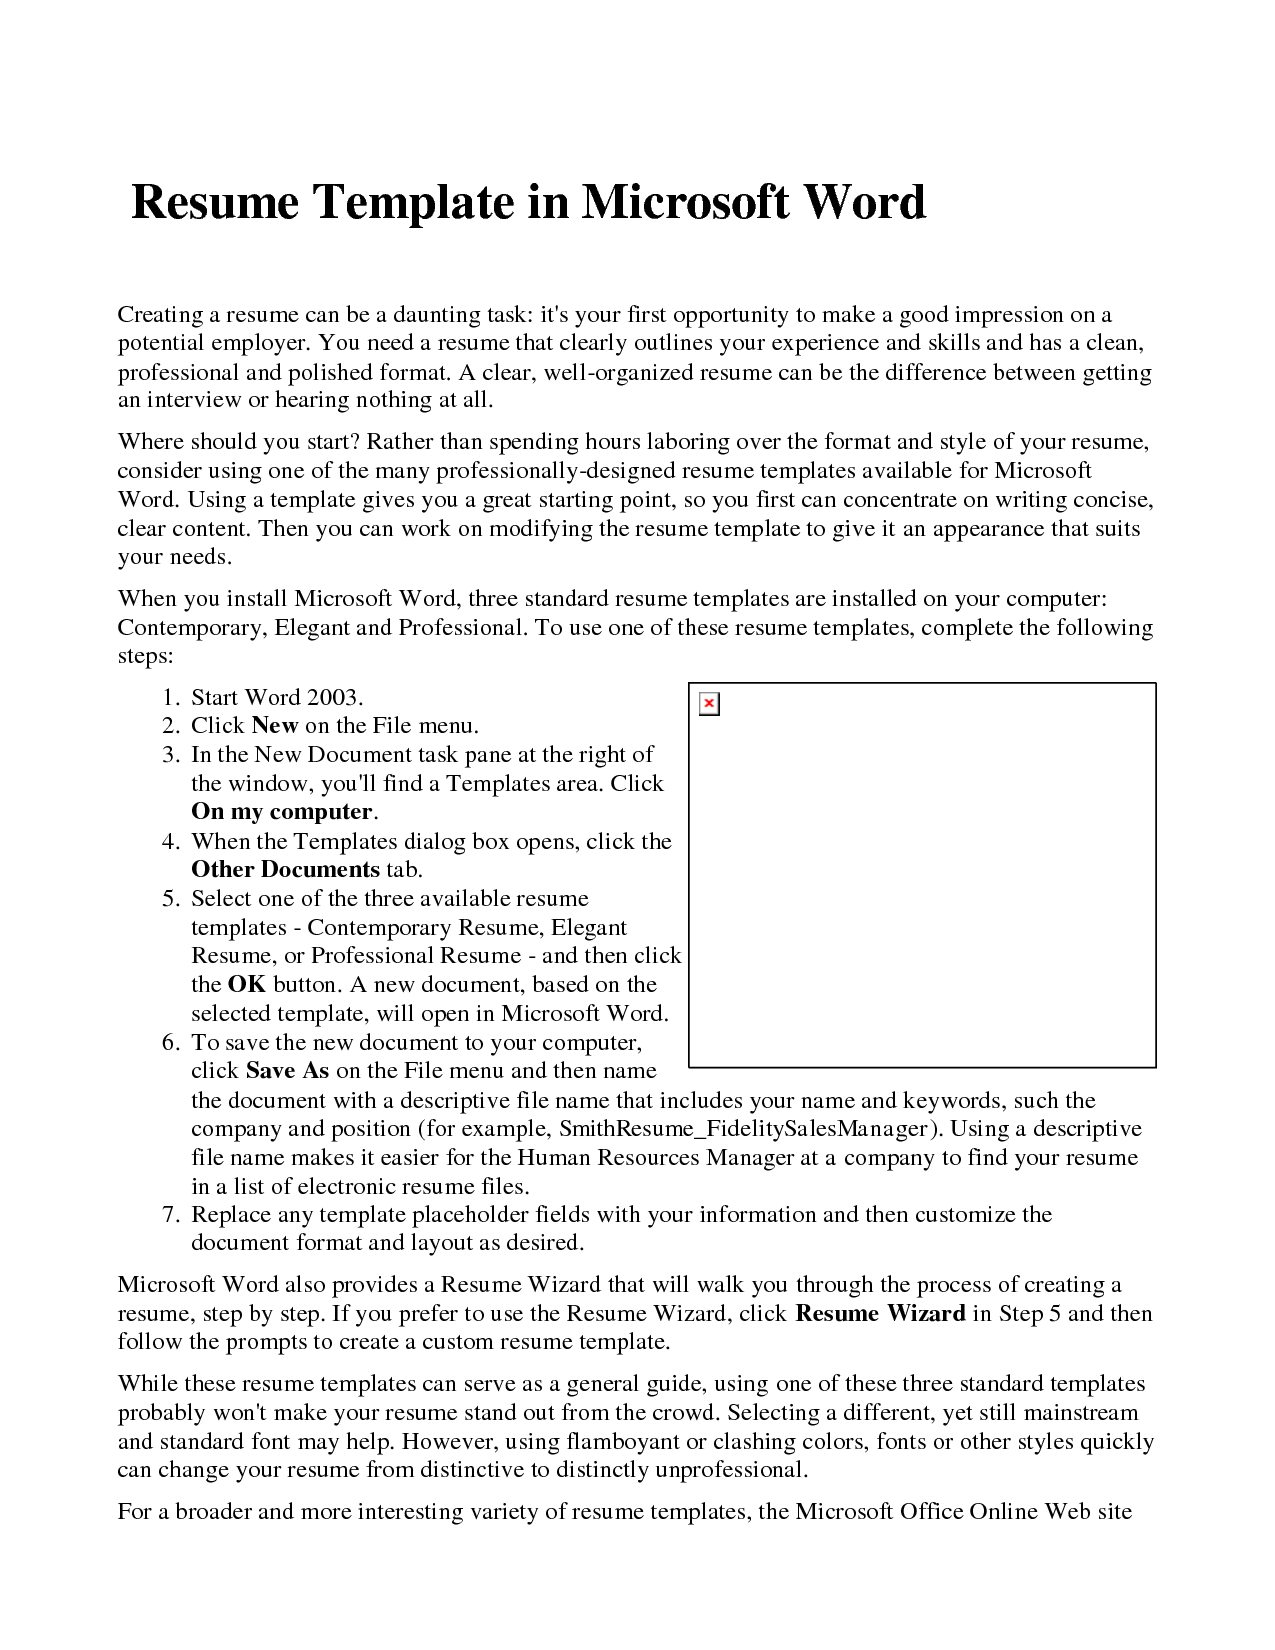 Make Resume Free Resume Templates Microsoft Word  Httpwww.resumecareer .